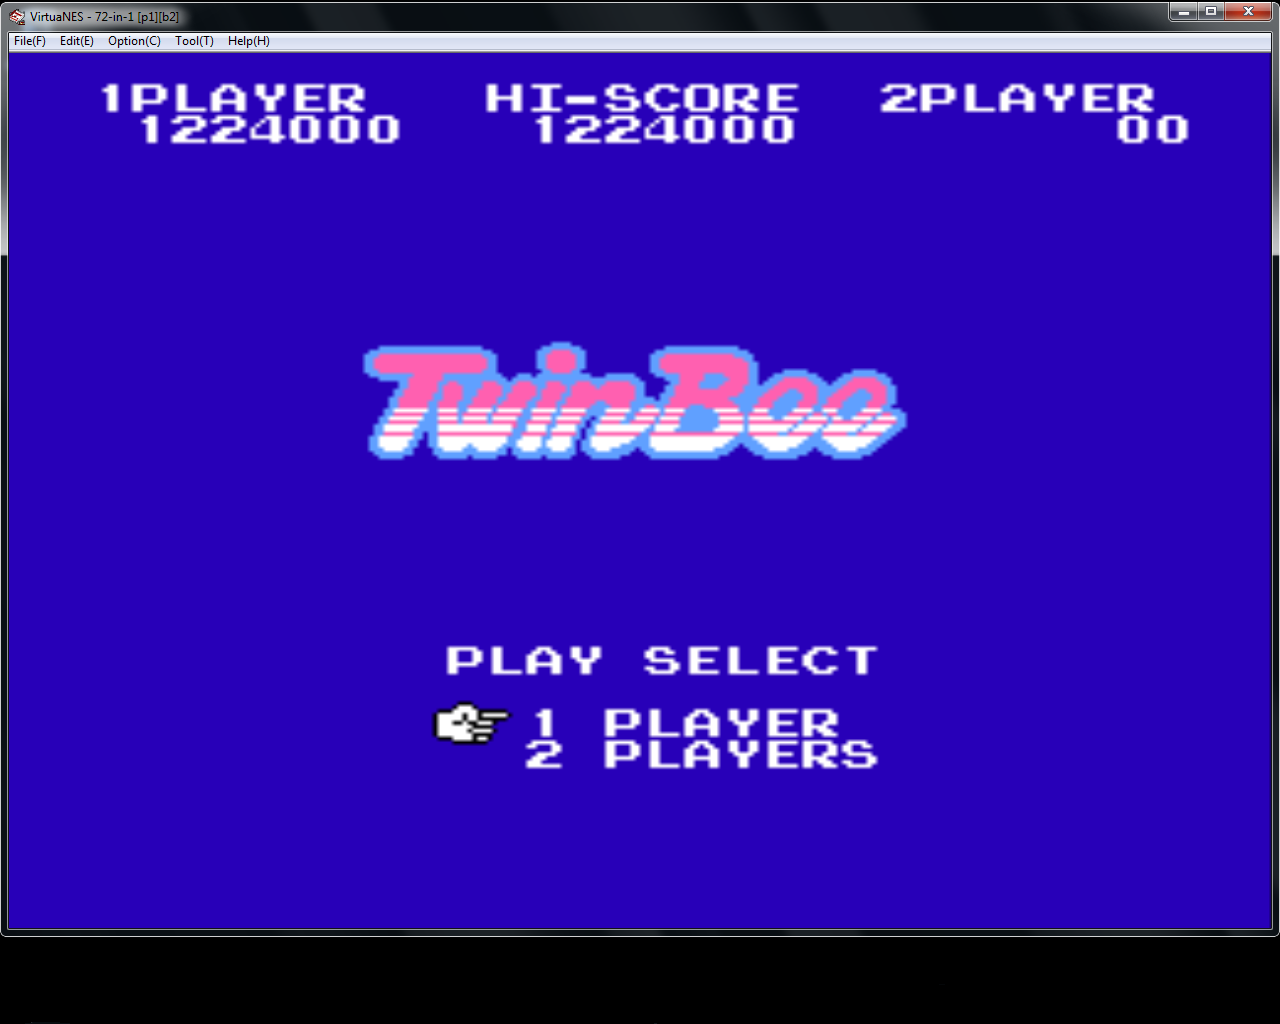 TwinBee 1,224,000 points